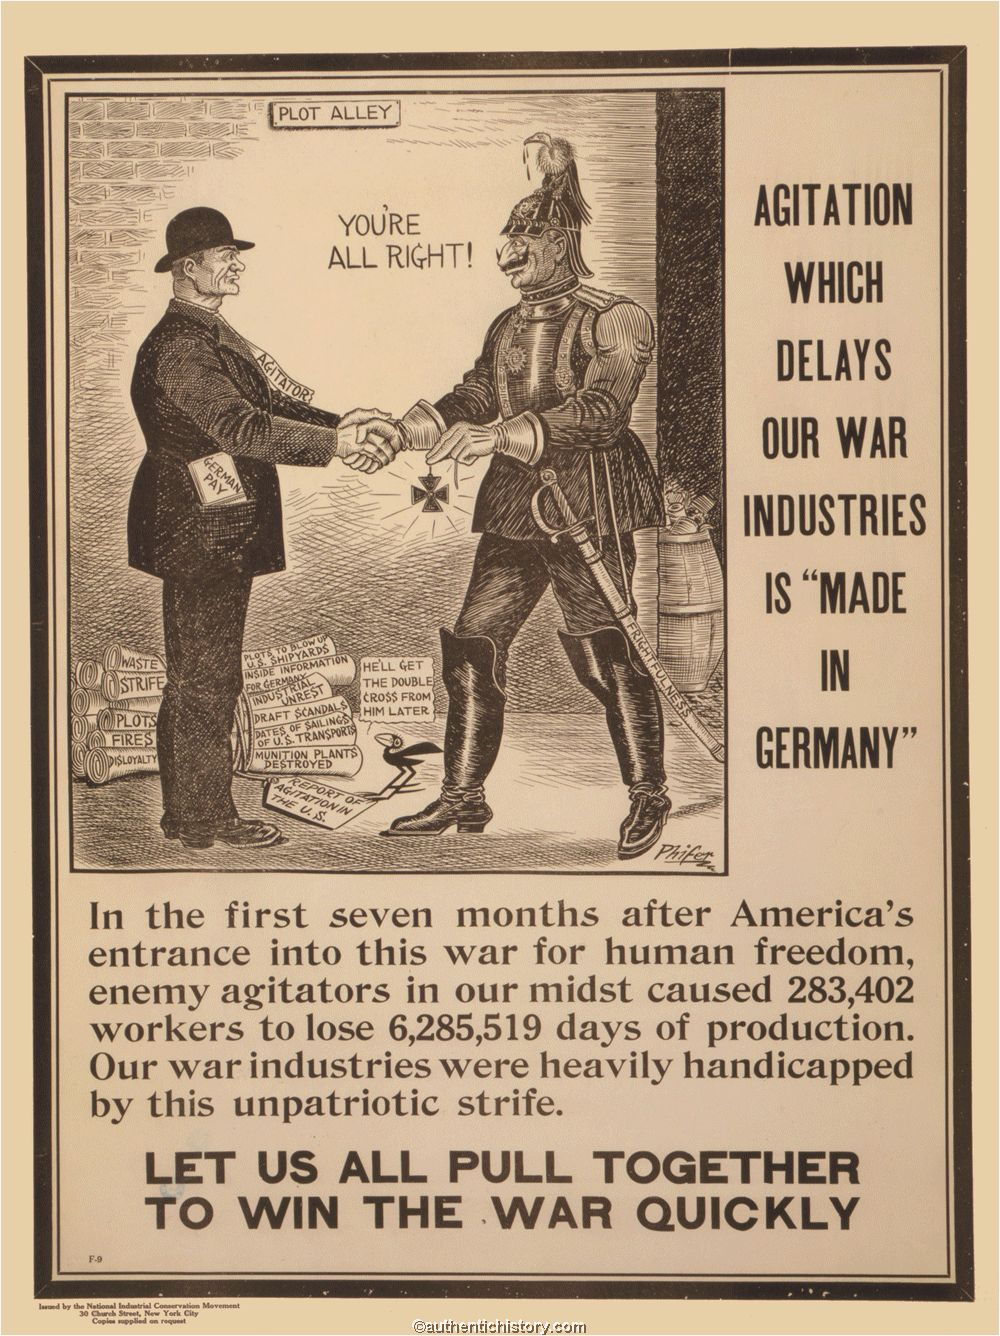 War Hysteria & The Persecution Of German Americans